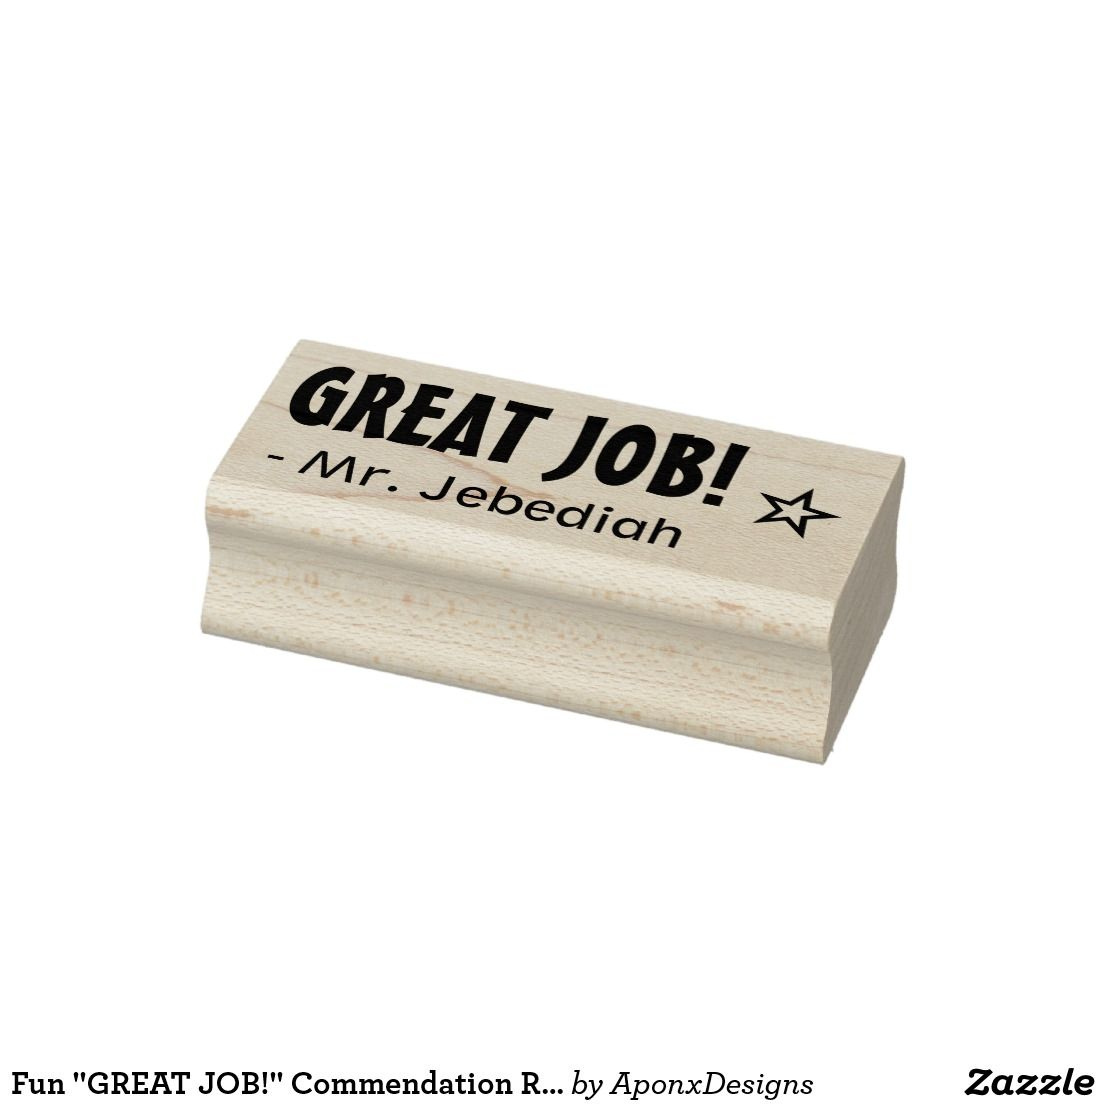 "Fun ""GREAT JOB!"" Commendation Rubber Stamp"